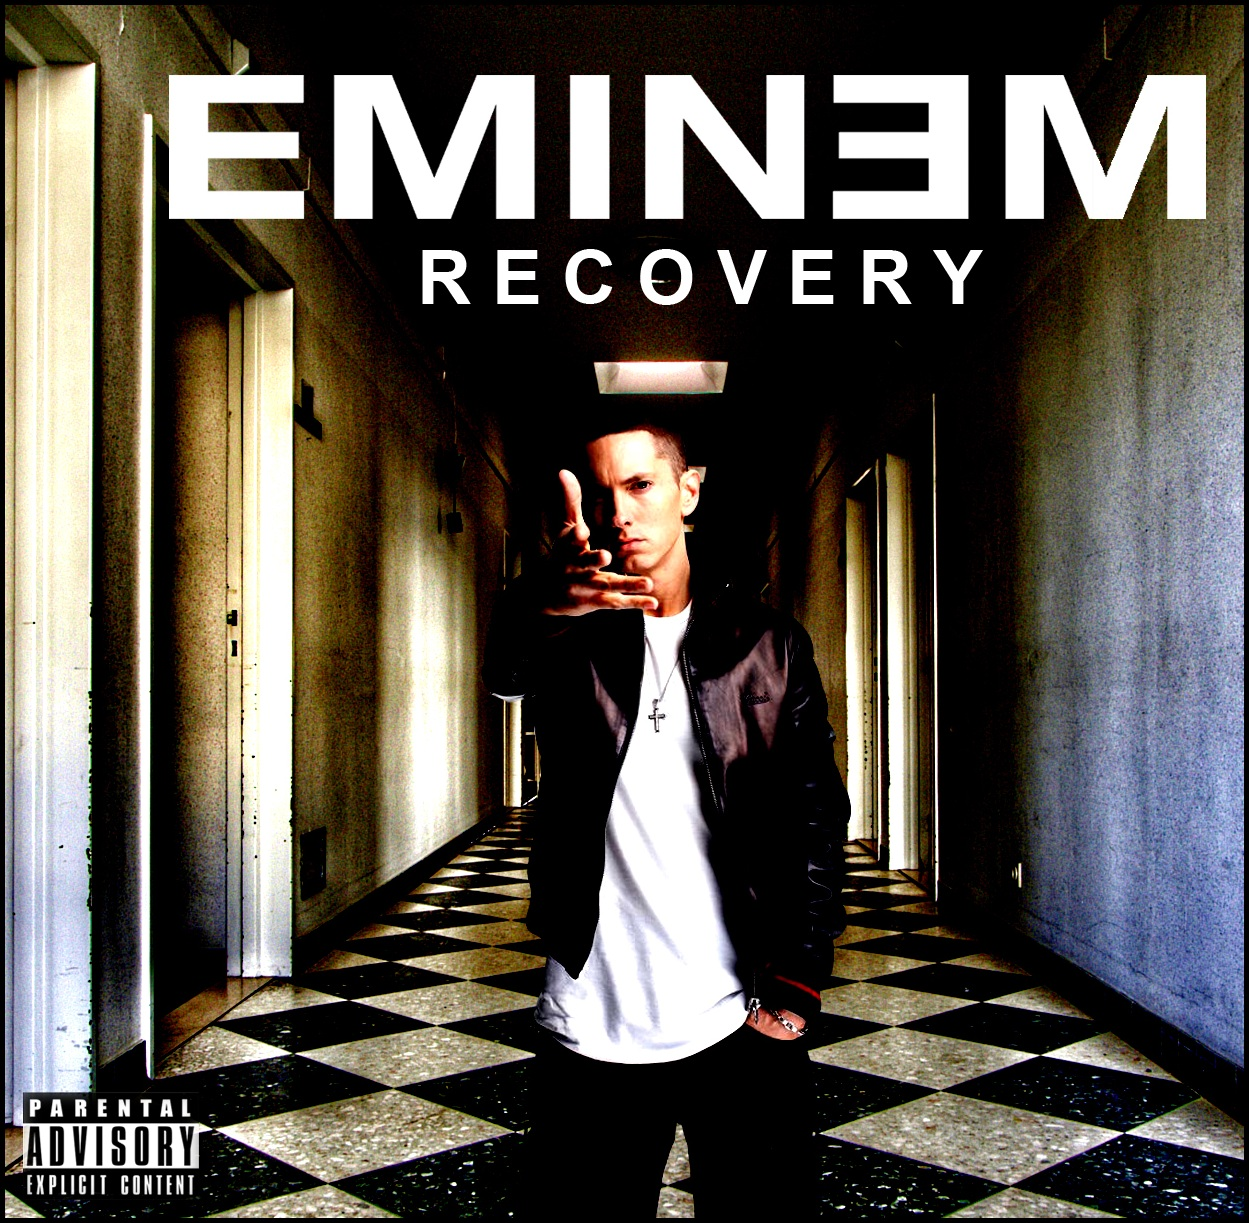 Free download of eminem recovery album